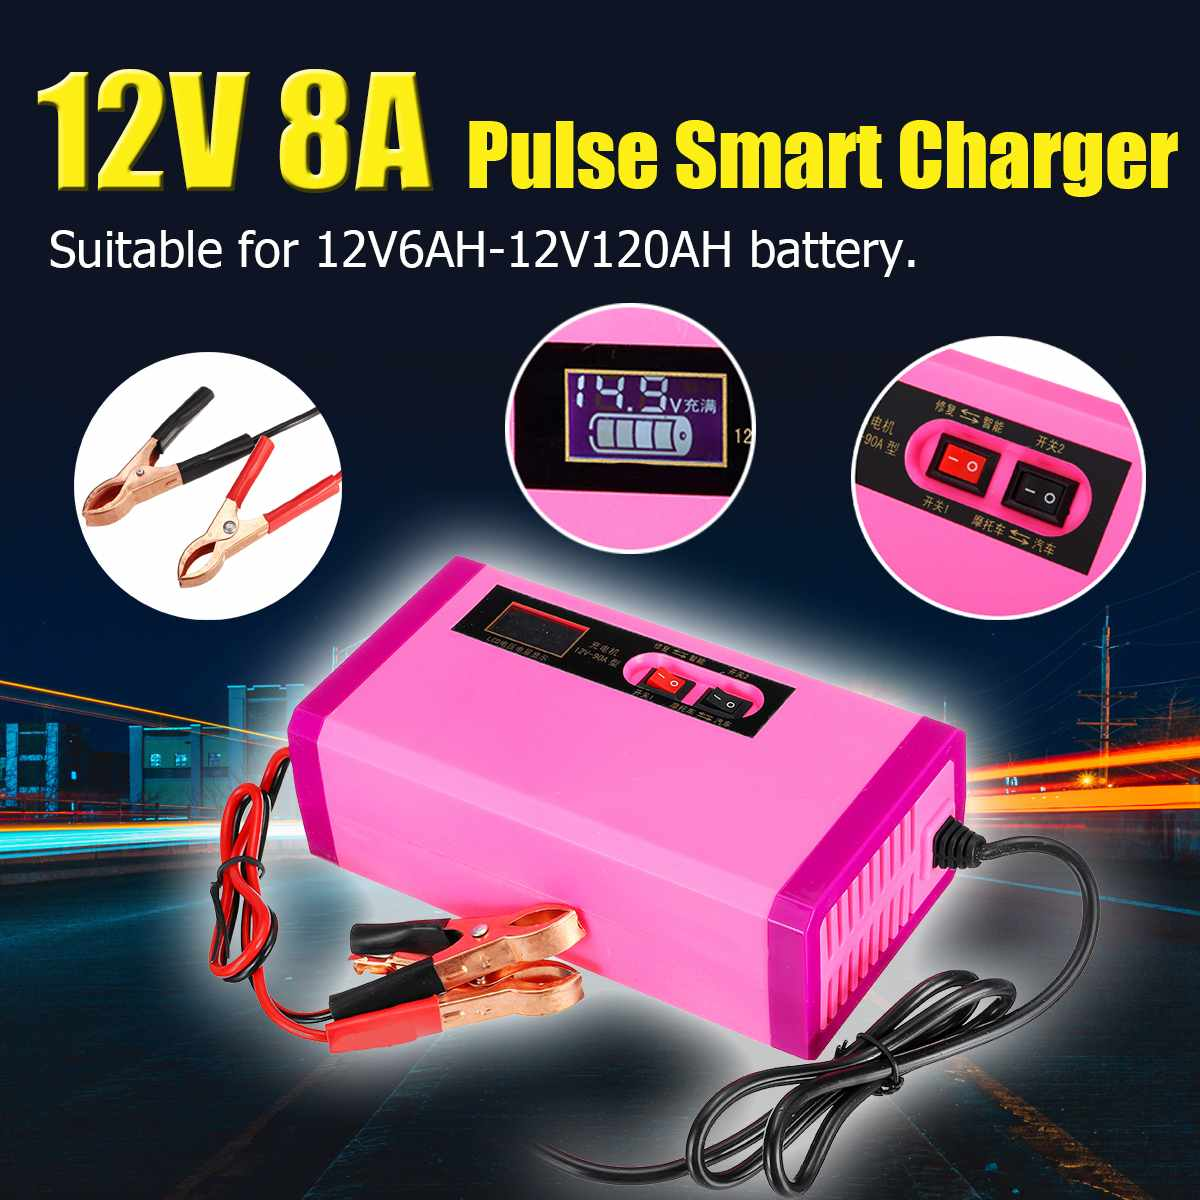 New 12V 8A 6-120Ah Auto <font><b>Car</b></font> Intelligent <font><b>Battery</b></font> <font><b>charger</b></font> <font><b>Jump</b></font> <font><b>Starter</b></font> power bank 100-240V For Tool Lithium <font><b>Battery</b></font> <font><b>Car</b></font> Motorcycle image